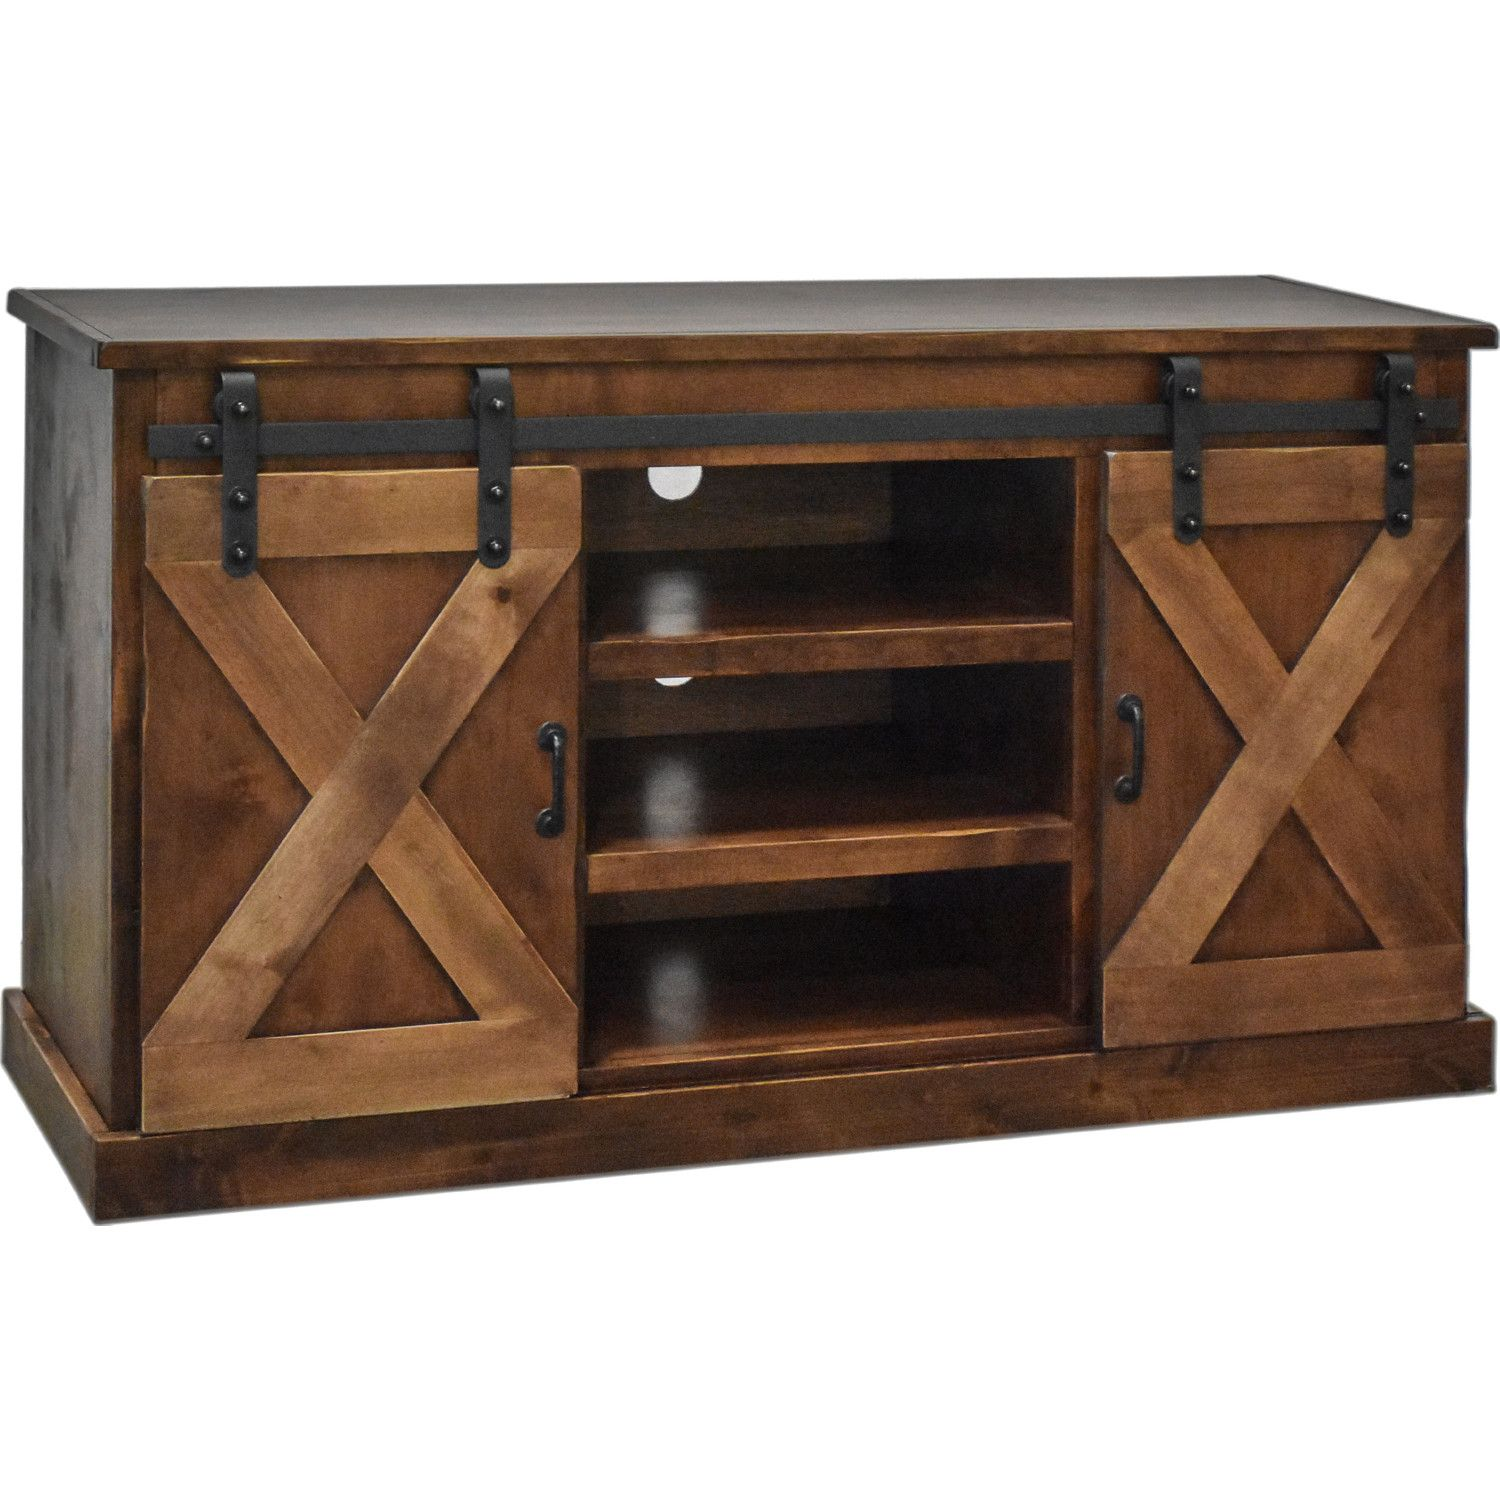 Legends Farmhouse 56 Quot Tv Stand Distressed Aged Whiskey